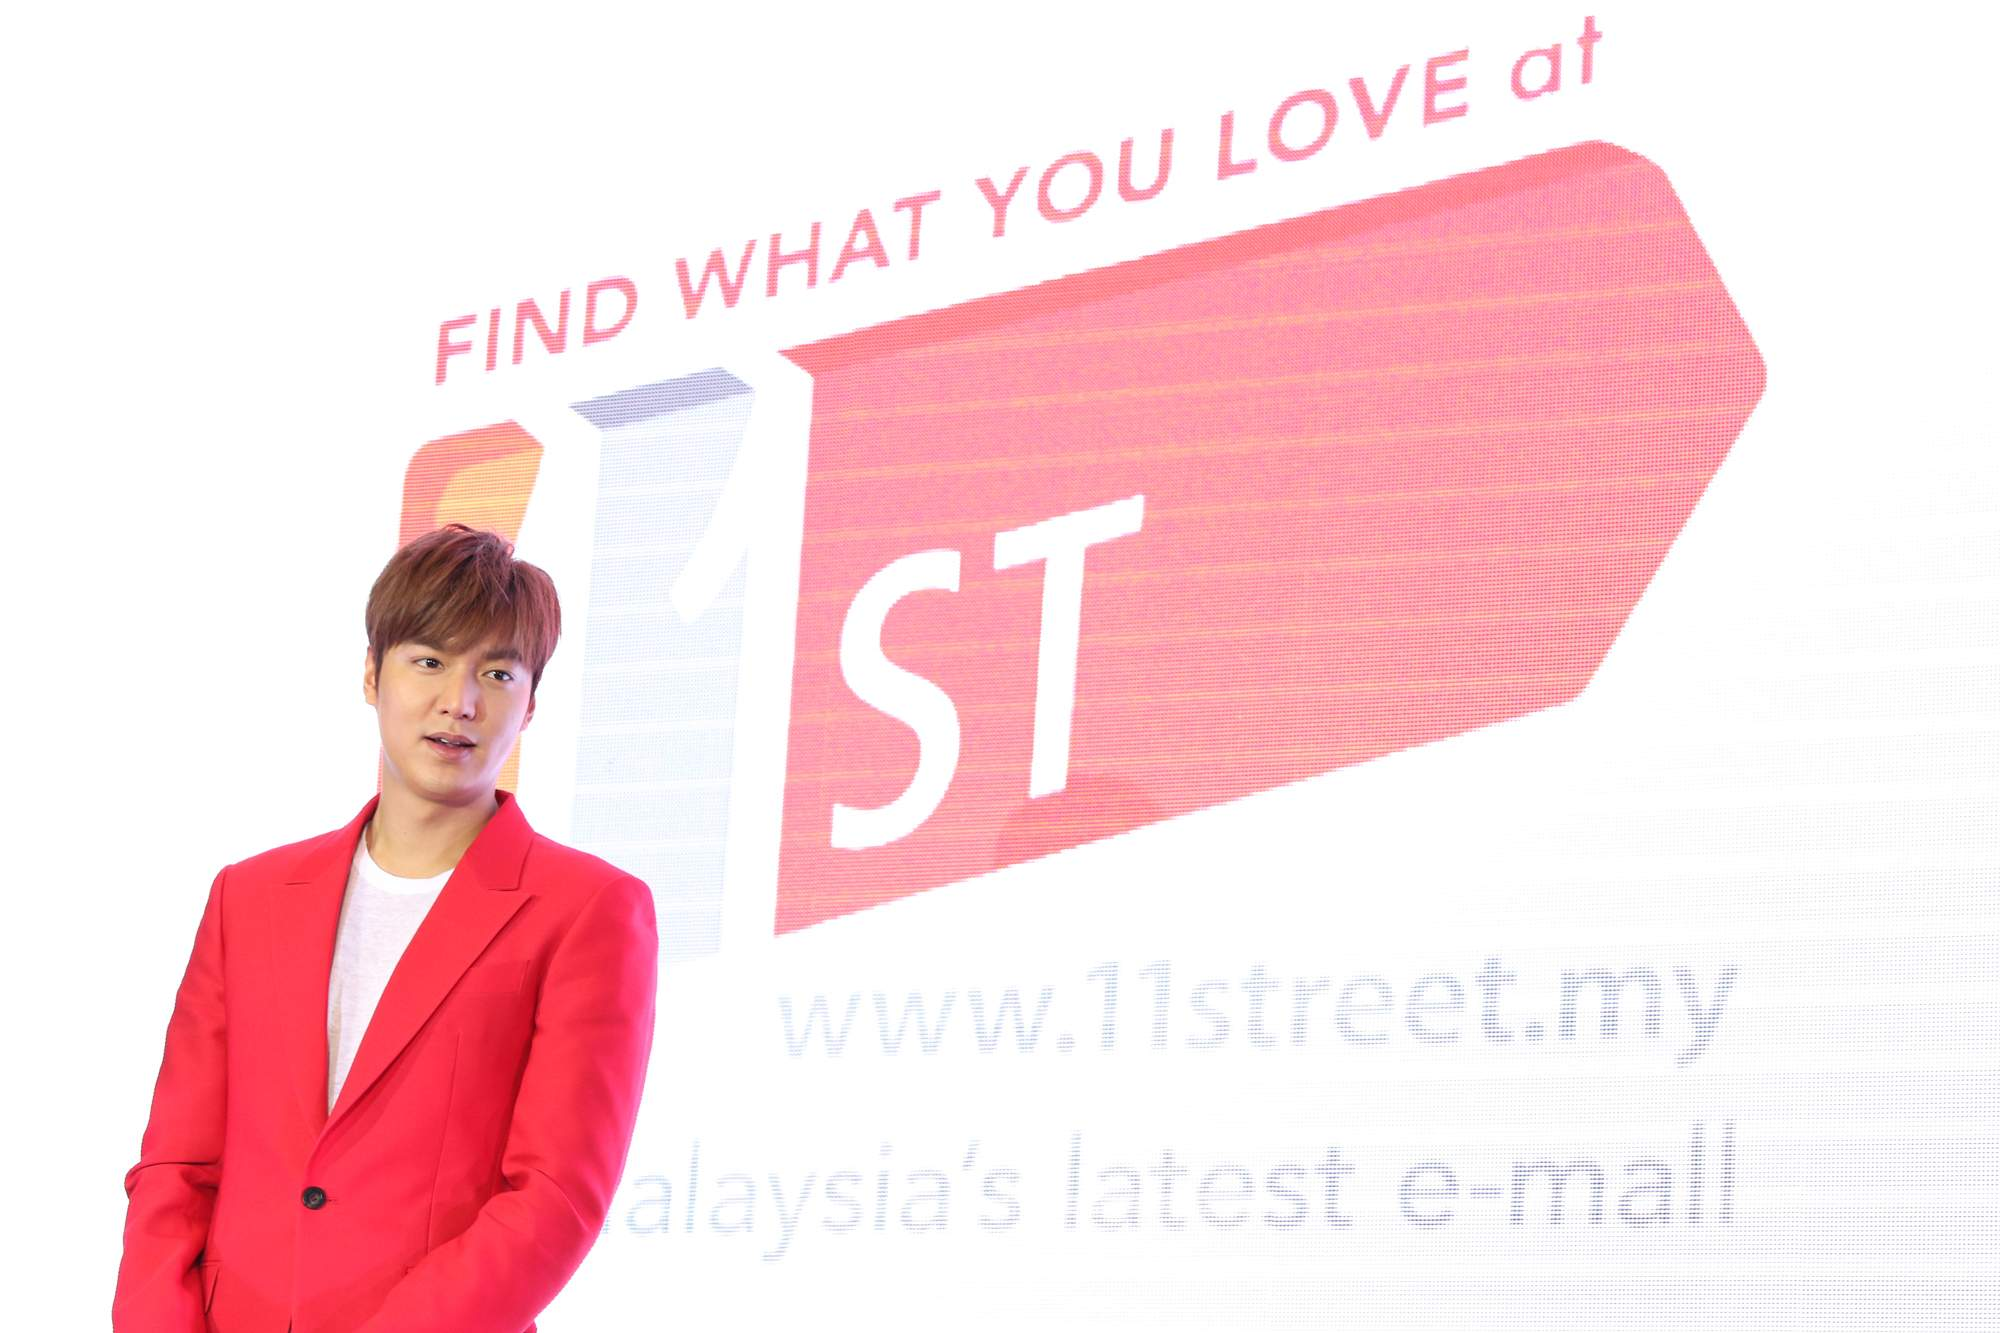 Lee-Min-Ho-made-an-appearance-at-the-11street-grand-launch-in-NU-Sentral